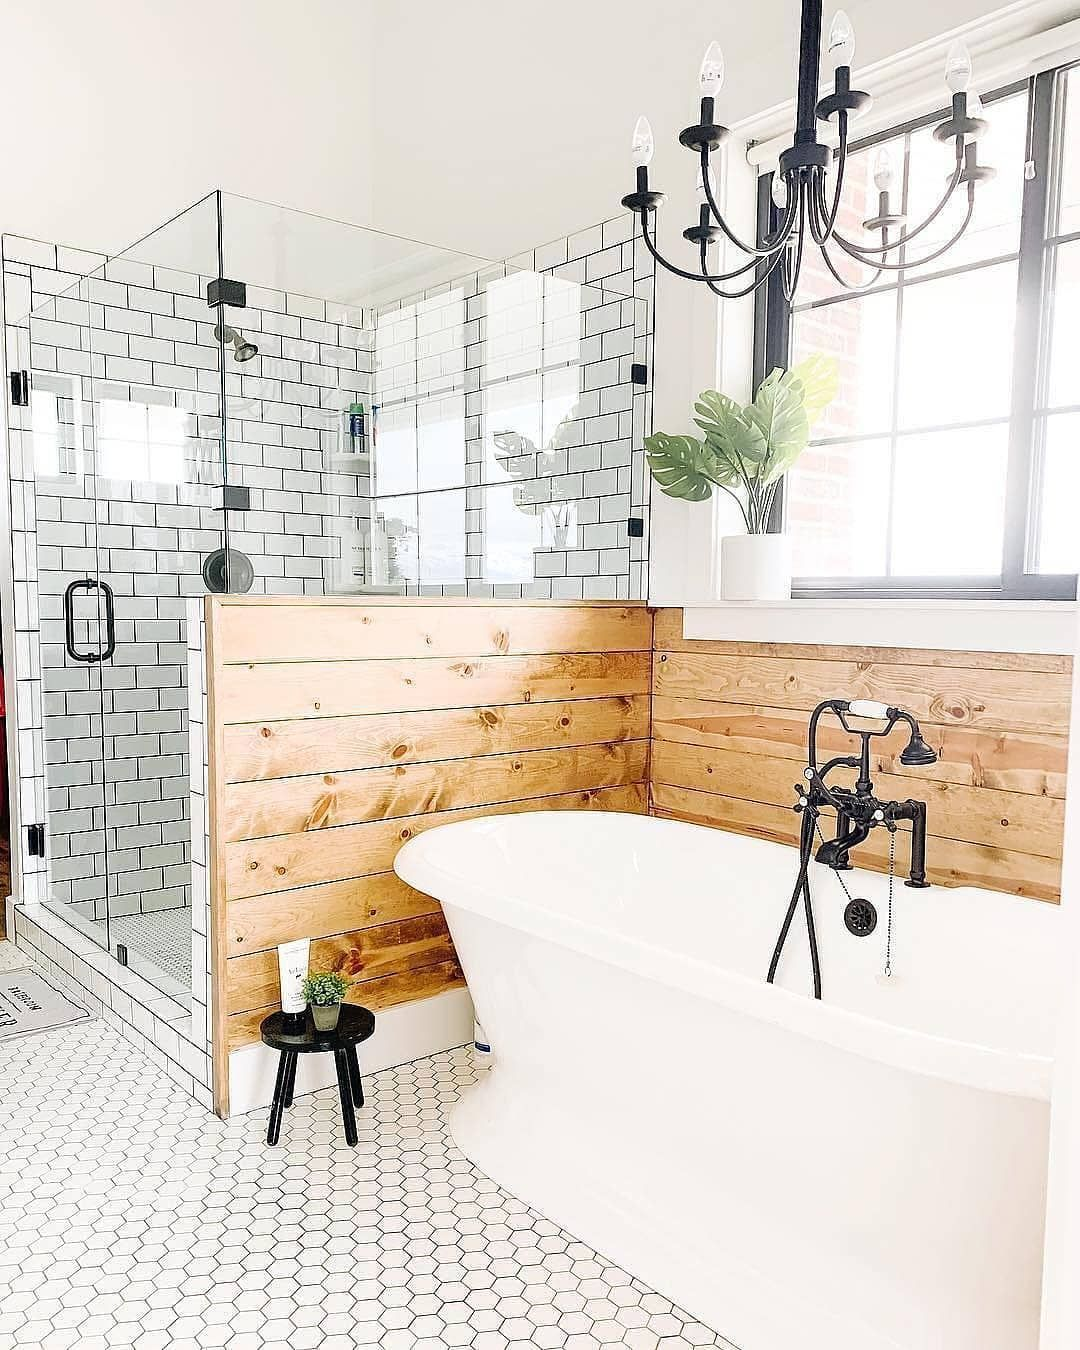 "Farmhouse Homes � on Instagram: ""We LOVE this blend of modern and rustic farmhouse in this master bathroom! � What do you think? Would you want a bath like this? � TAG a…"""